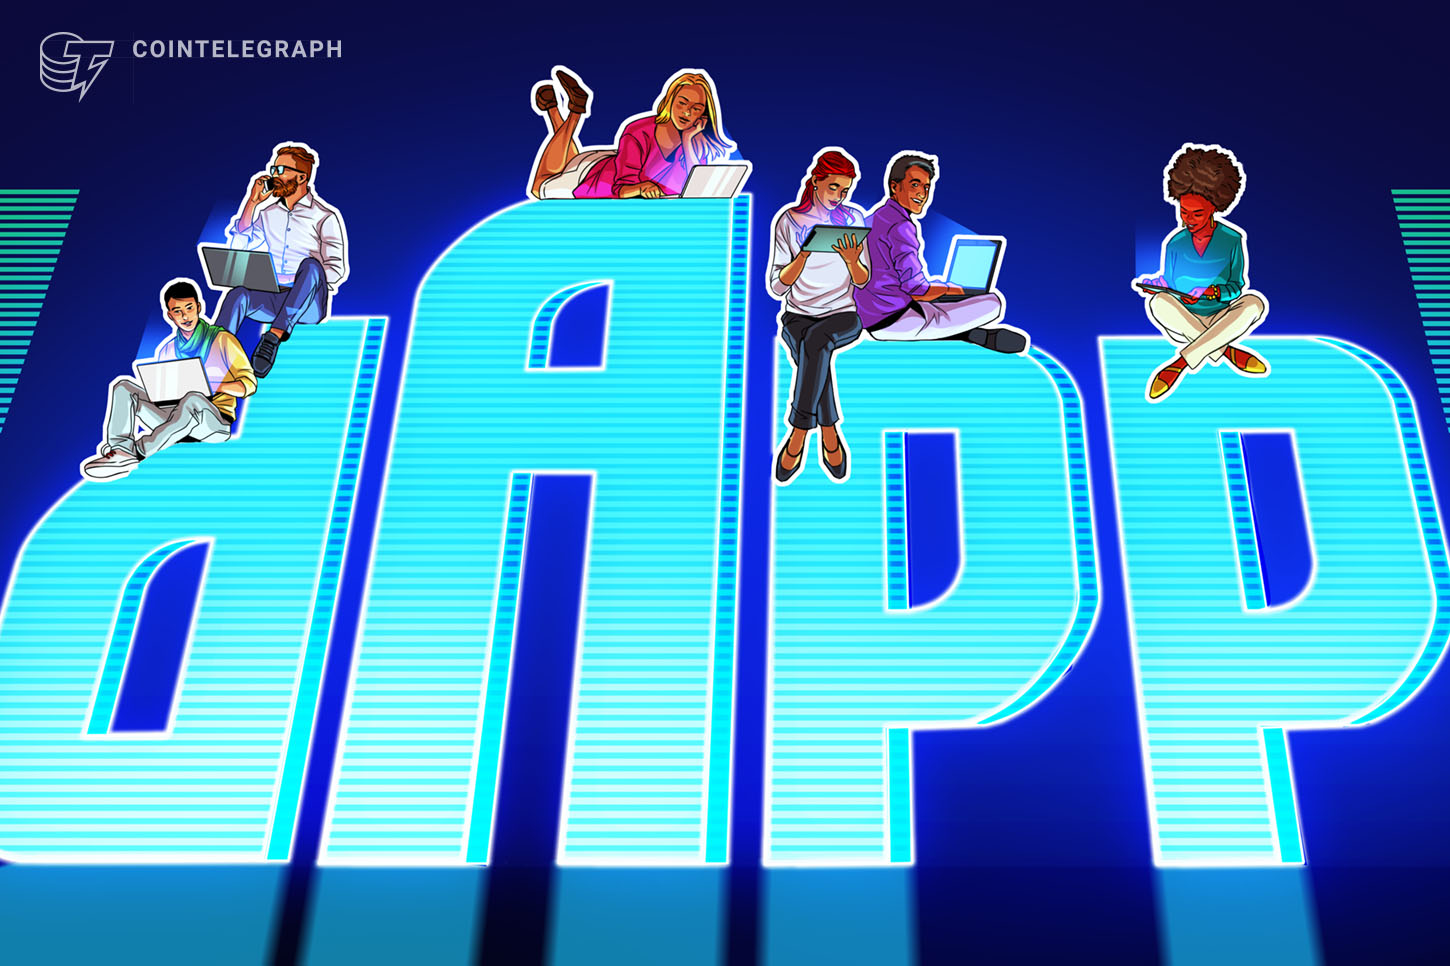 A decentralized app store might lead crypto toward more centralization